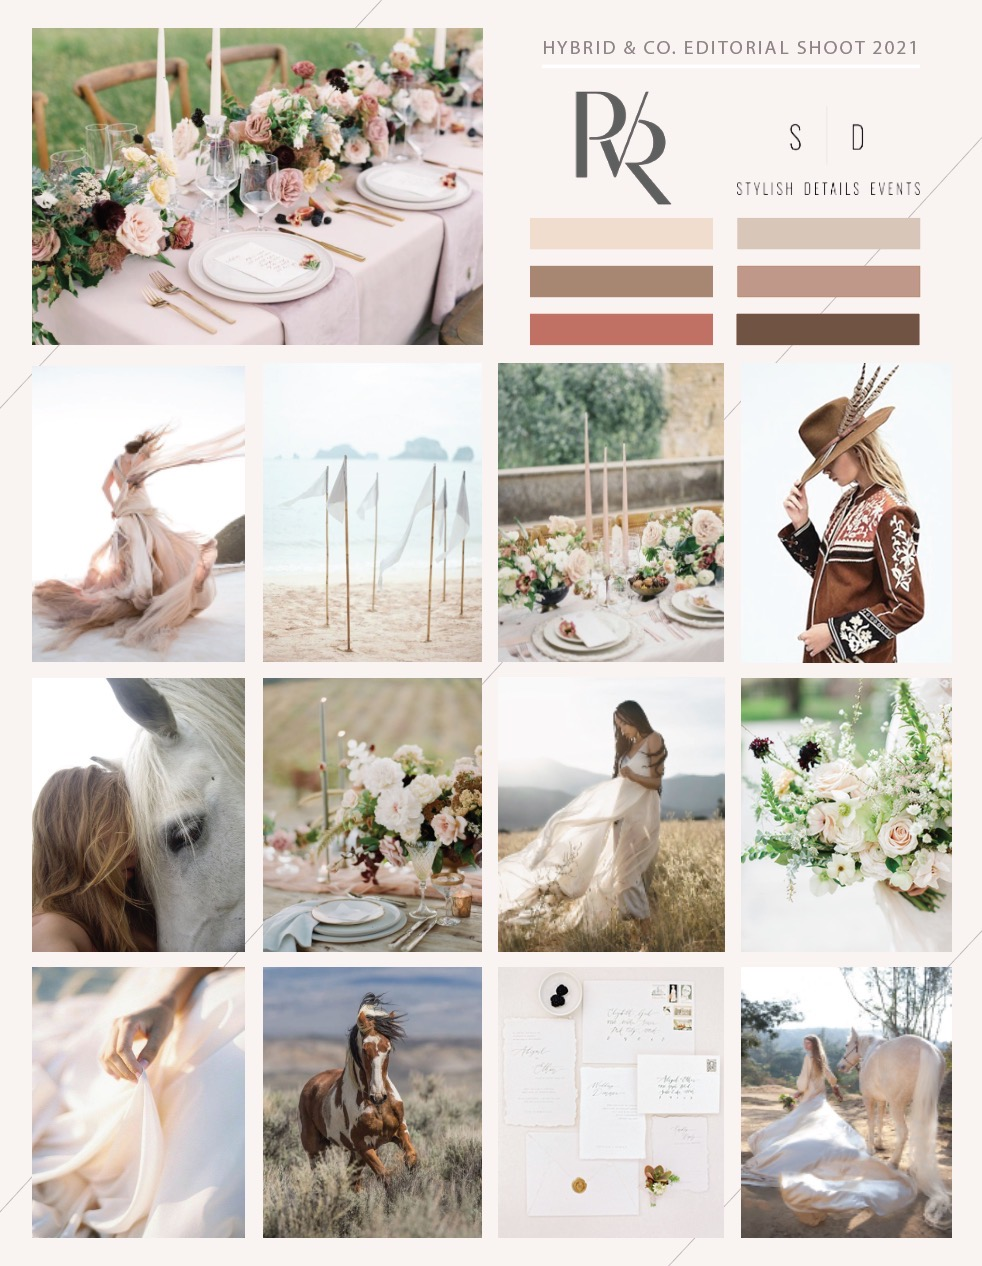 Paul Von Rieter Styled Shoot 1:00-4:00pm Tuesday